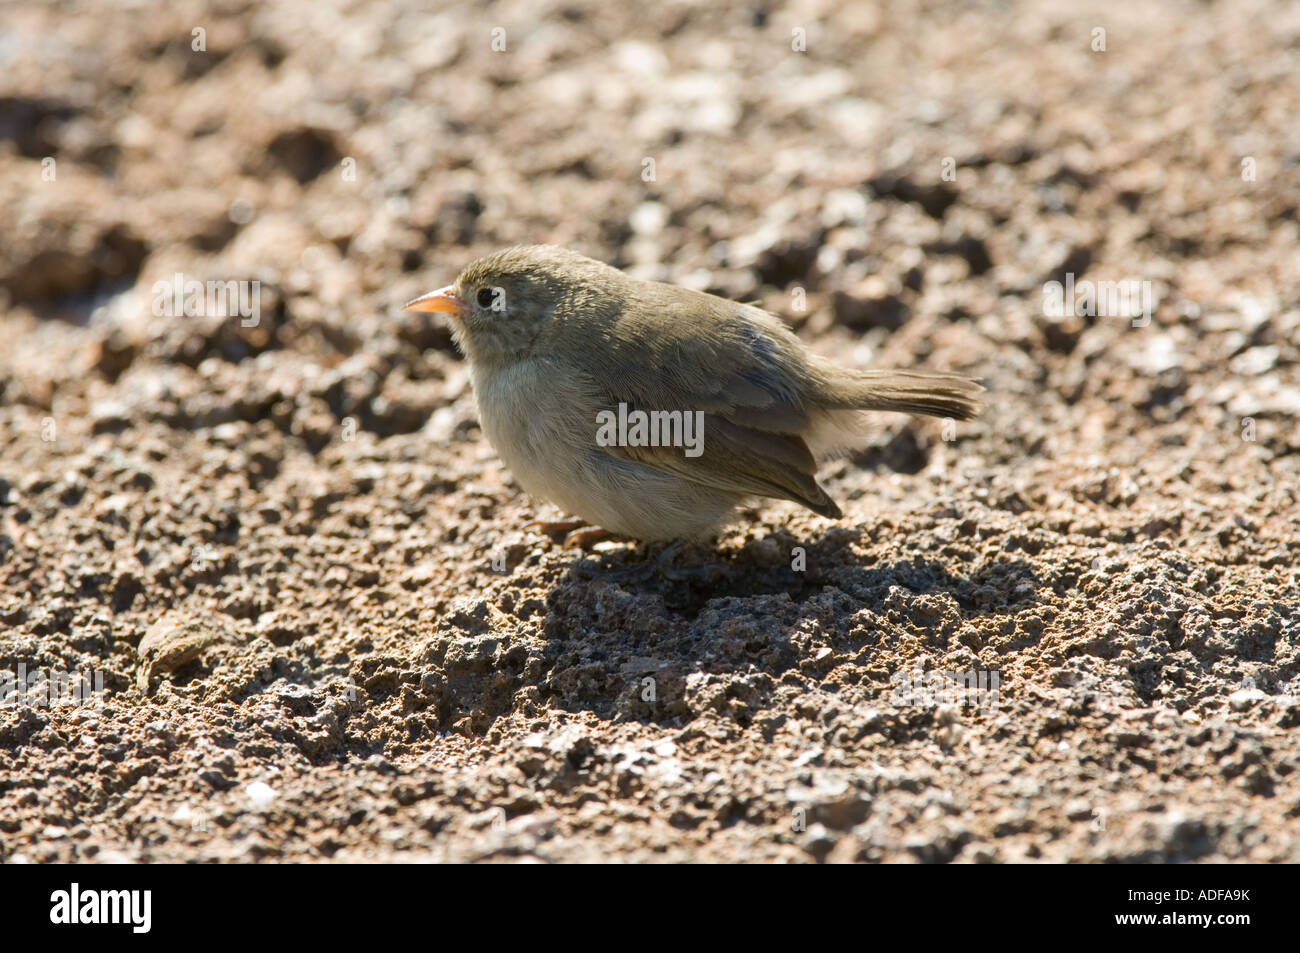 Warbler Finch (Certhidea fusca) Perched on ground Darwin Bay Genovesa Galapagos Ecuador - Stock Image